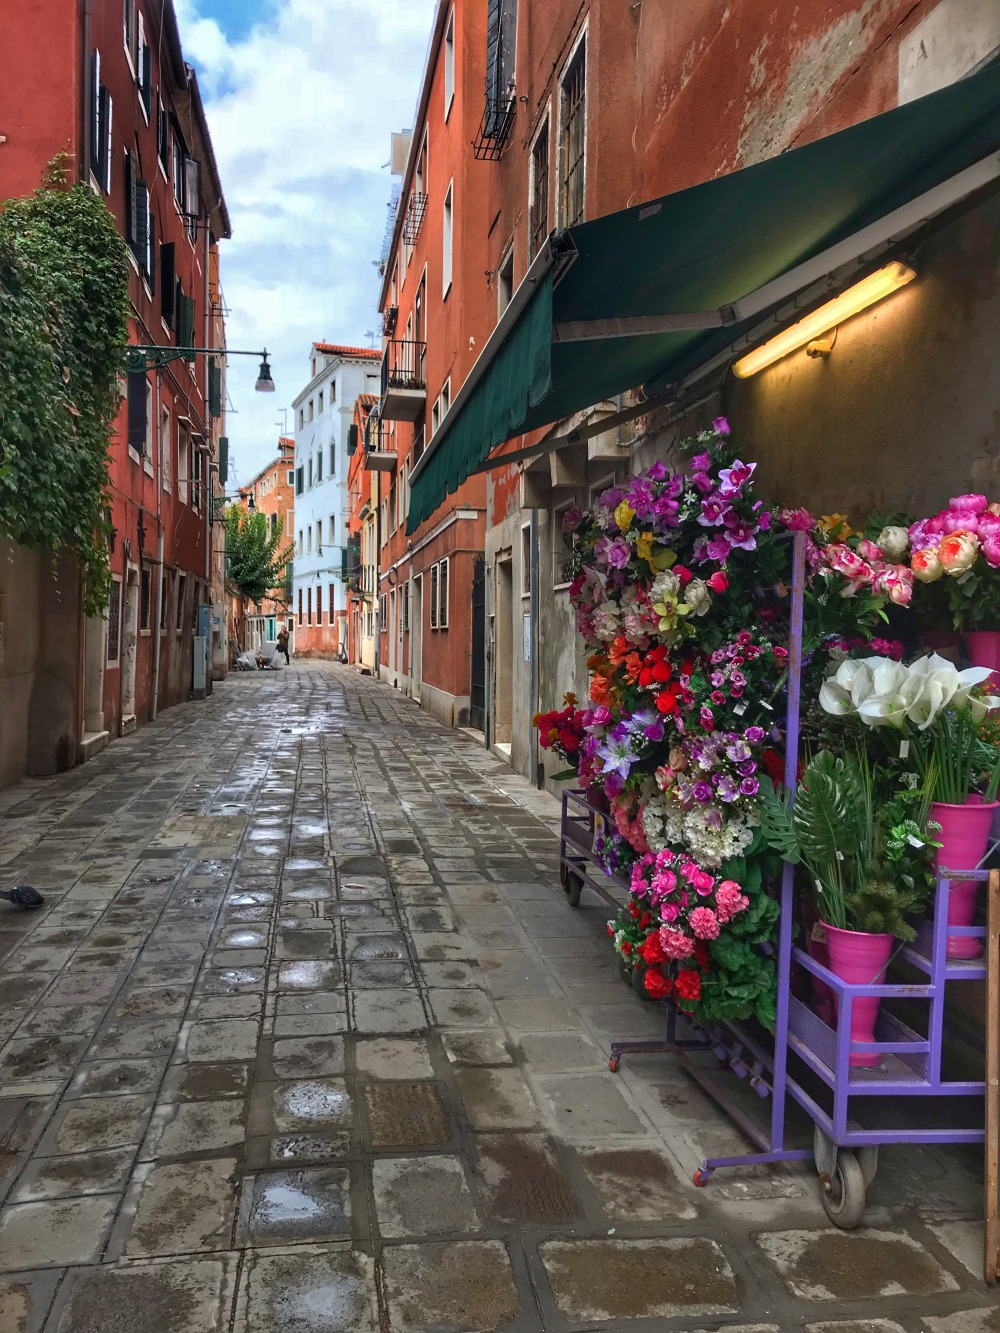 The Jewish ghetto of Cannaregio, Venice, Italy